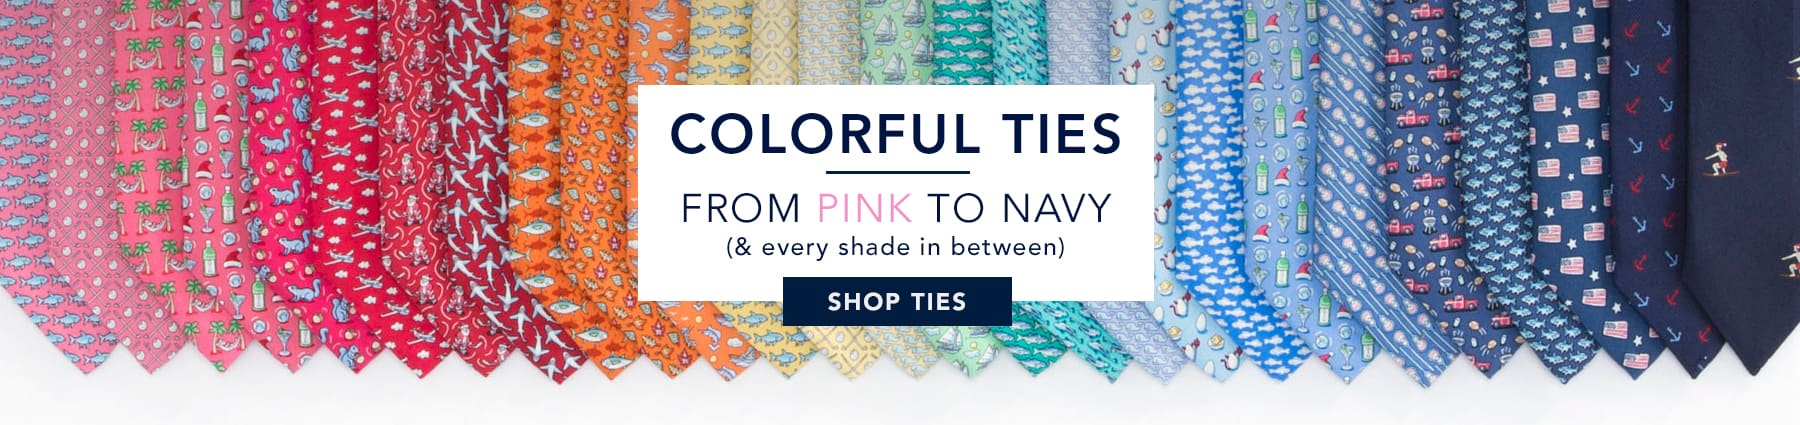 Colorful ties from pink to navy (& every shade in between.) Shop Ties.